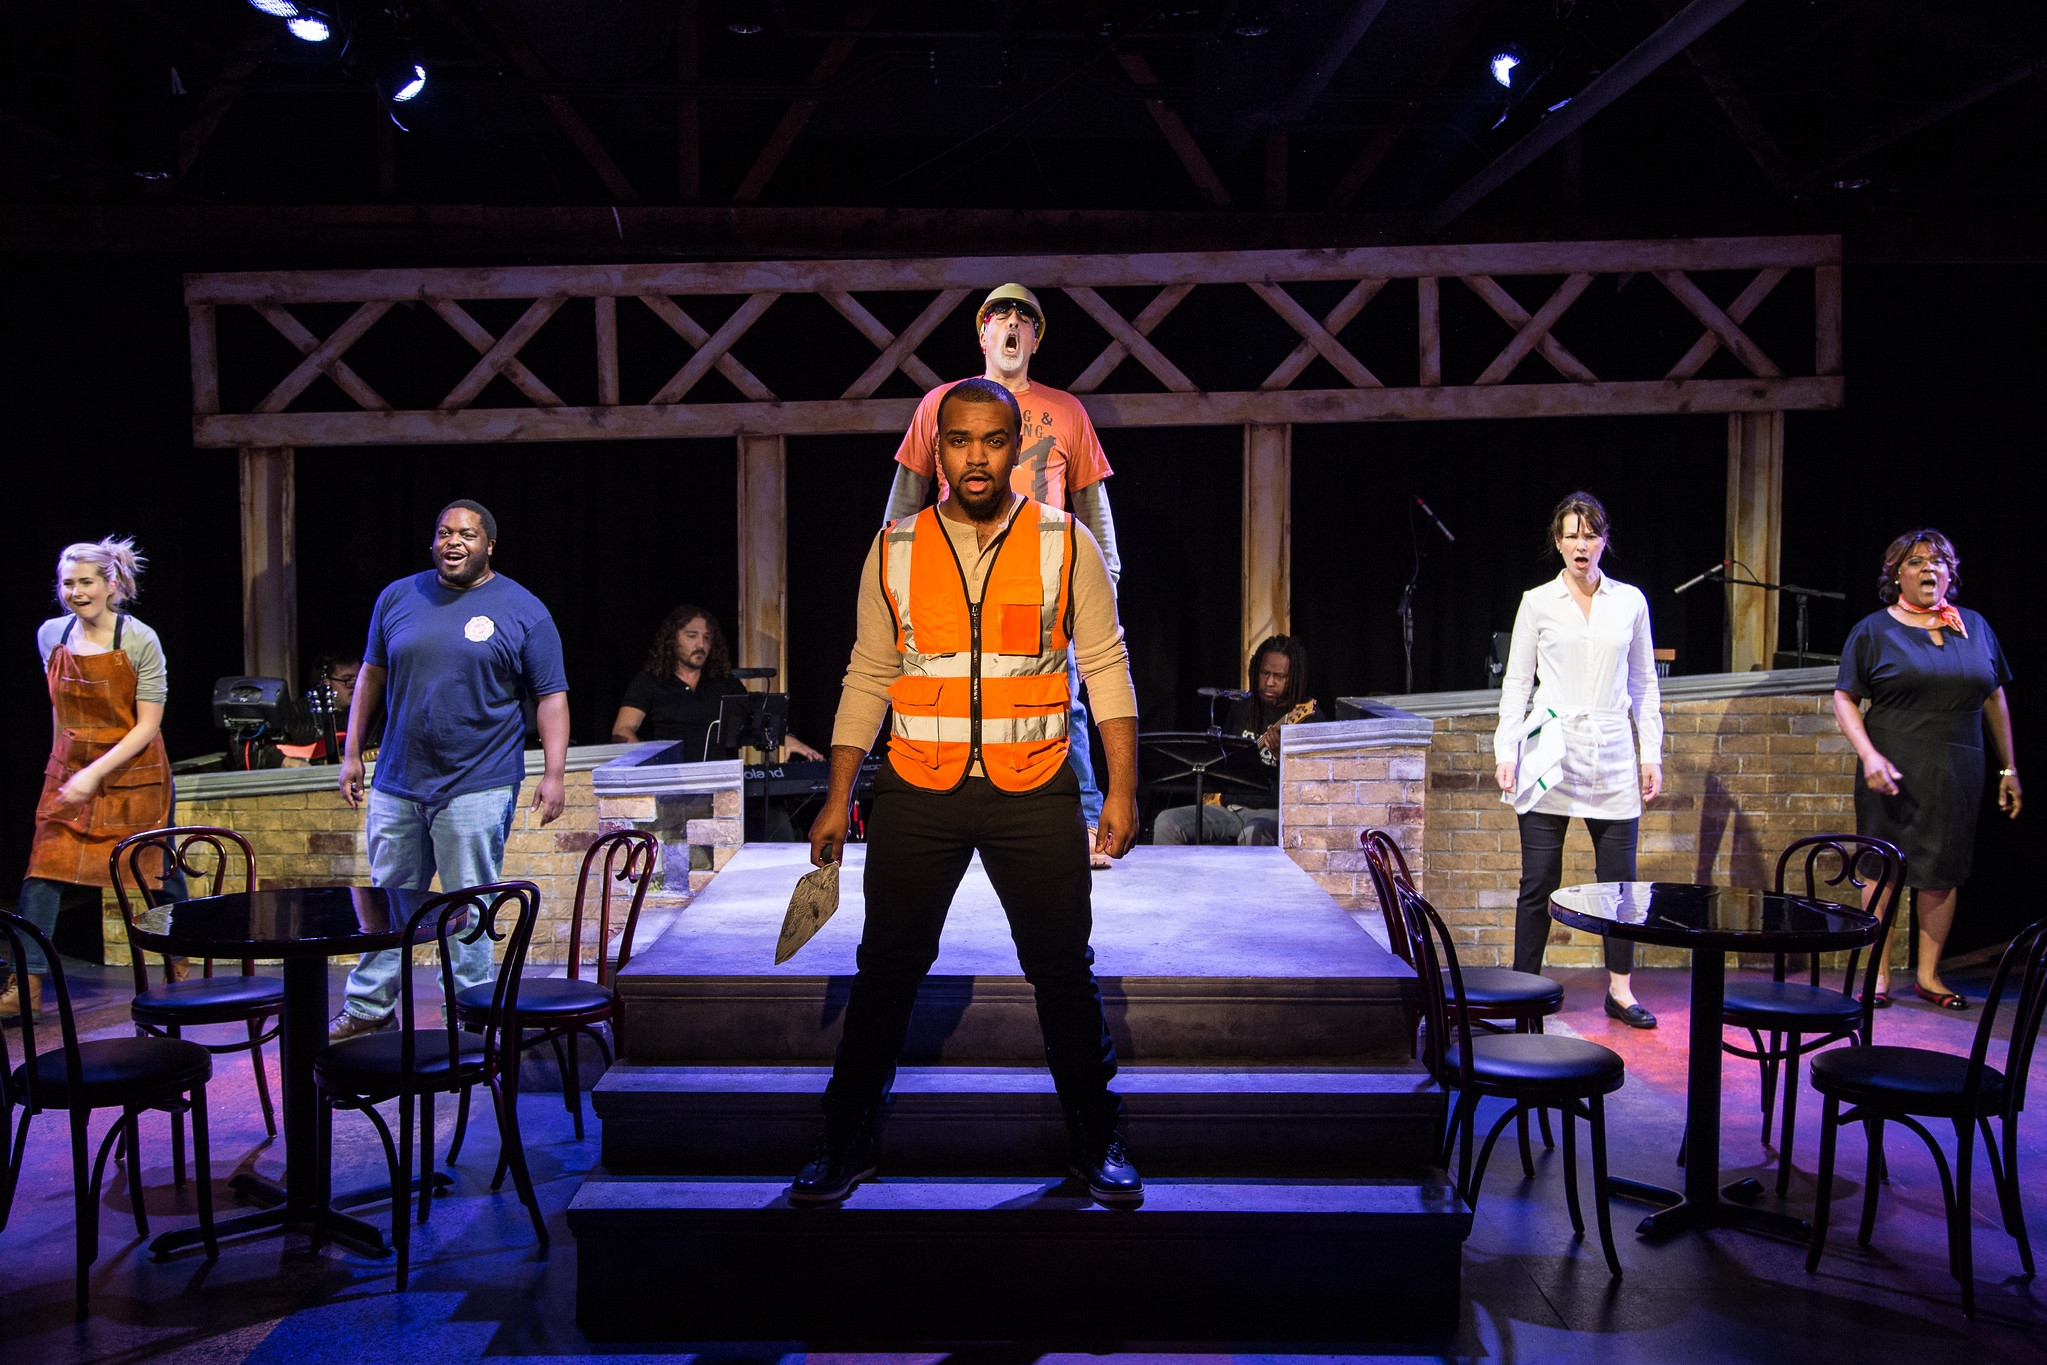 """The cast of Theo-Ubique's production of """"Working"""" includes: Kiersten Frumkin (from left), Jared David Michael Grant, Stephen Blu Allen, Michael Kingston, Loretta Rezos, Cynthia F. Carter. and (background, in band) Perry Cowdery, Jeremy Ramey and Rafe Bradford."""